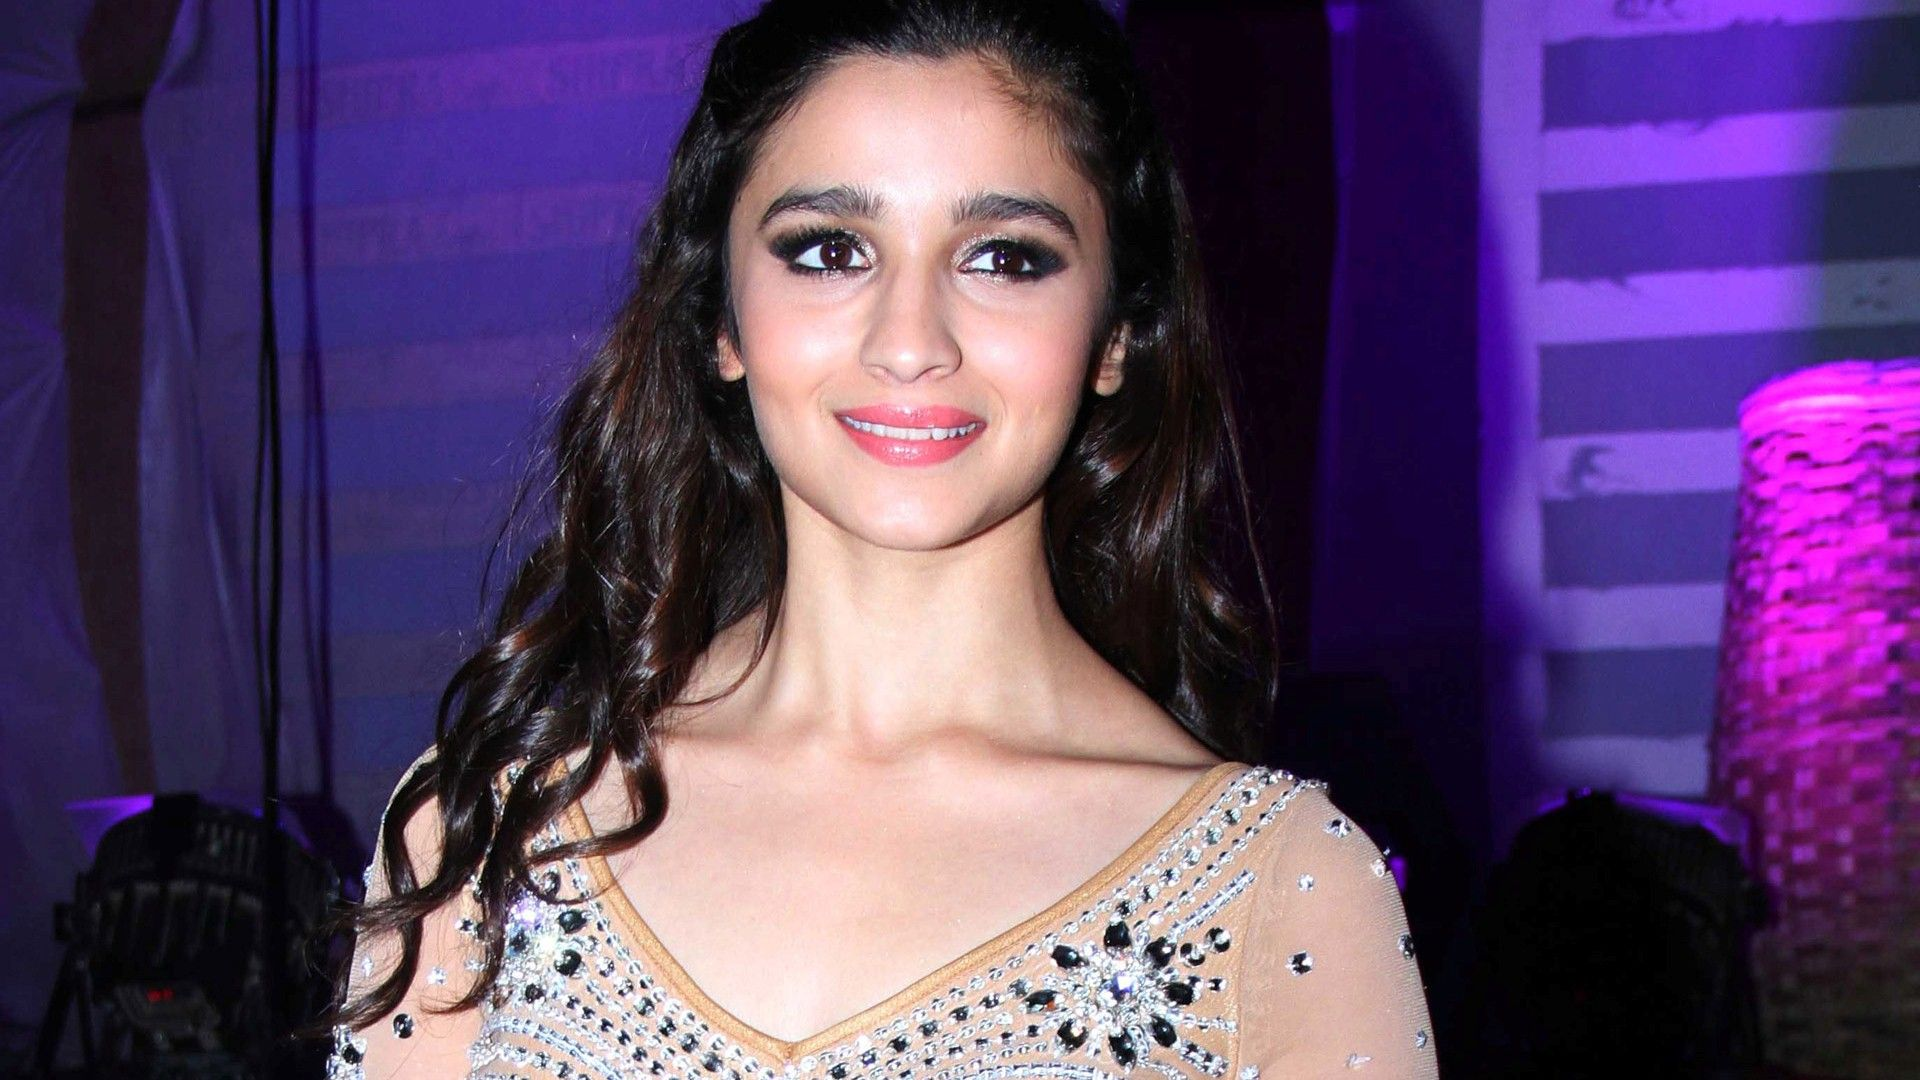 alia bhatt wallpapers free download hd cute bollywood actress images